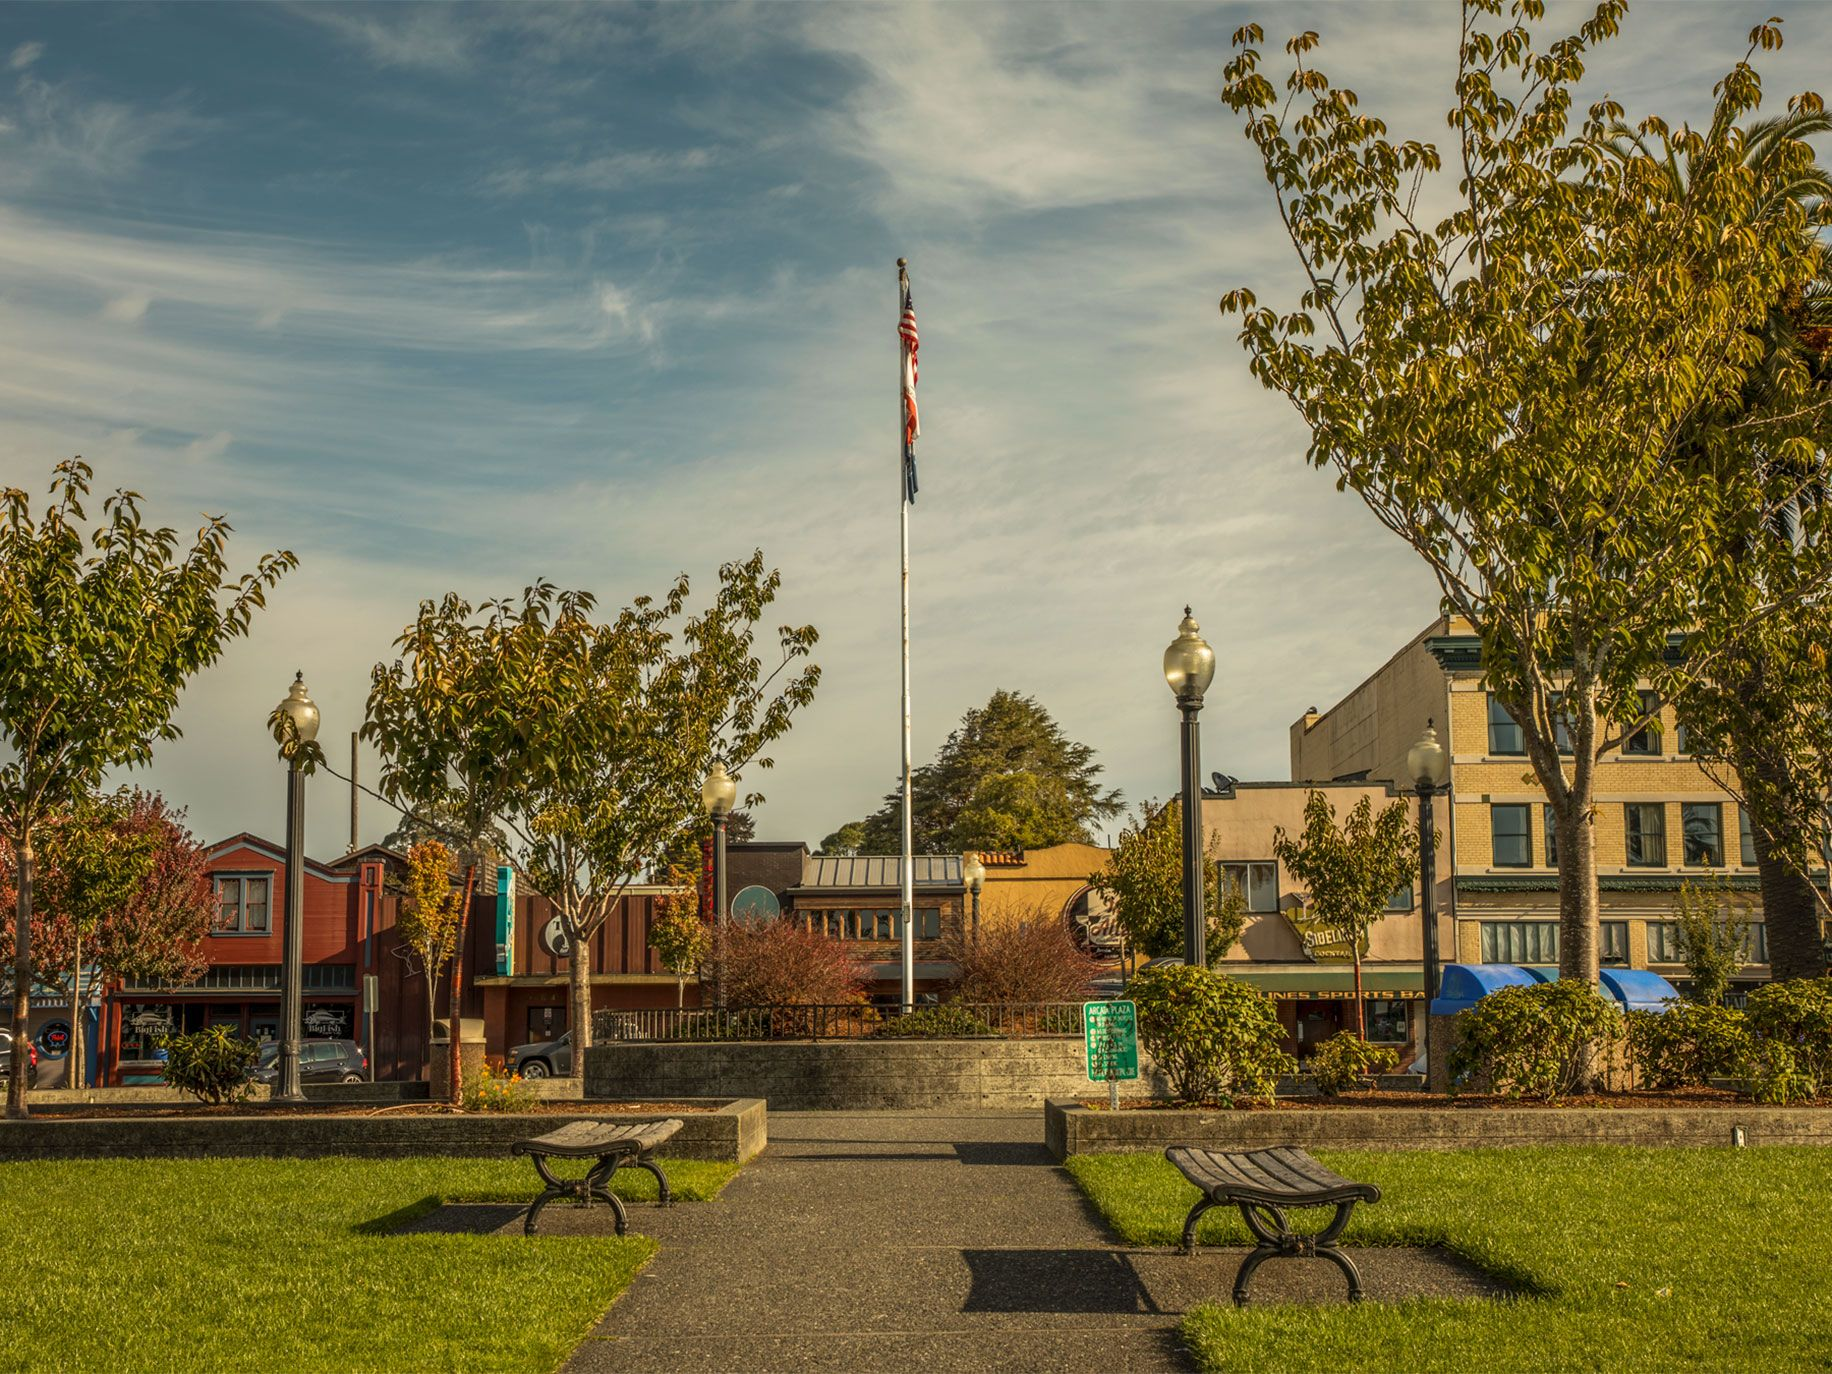 A statue of President William McKinley was removed from the center of the Arcata Plaza last year and a flagpole was erected in its place.